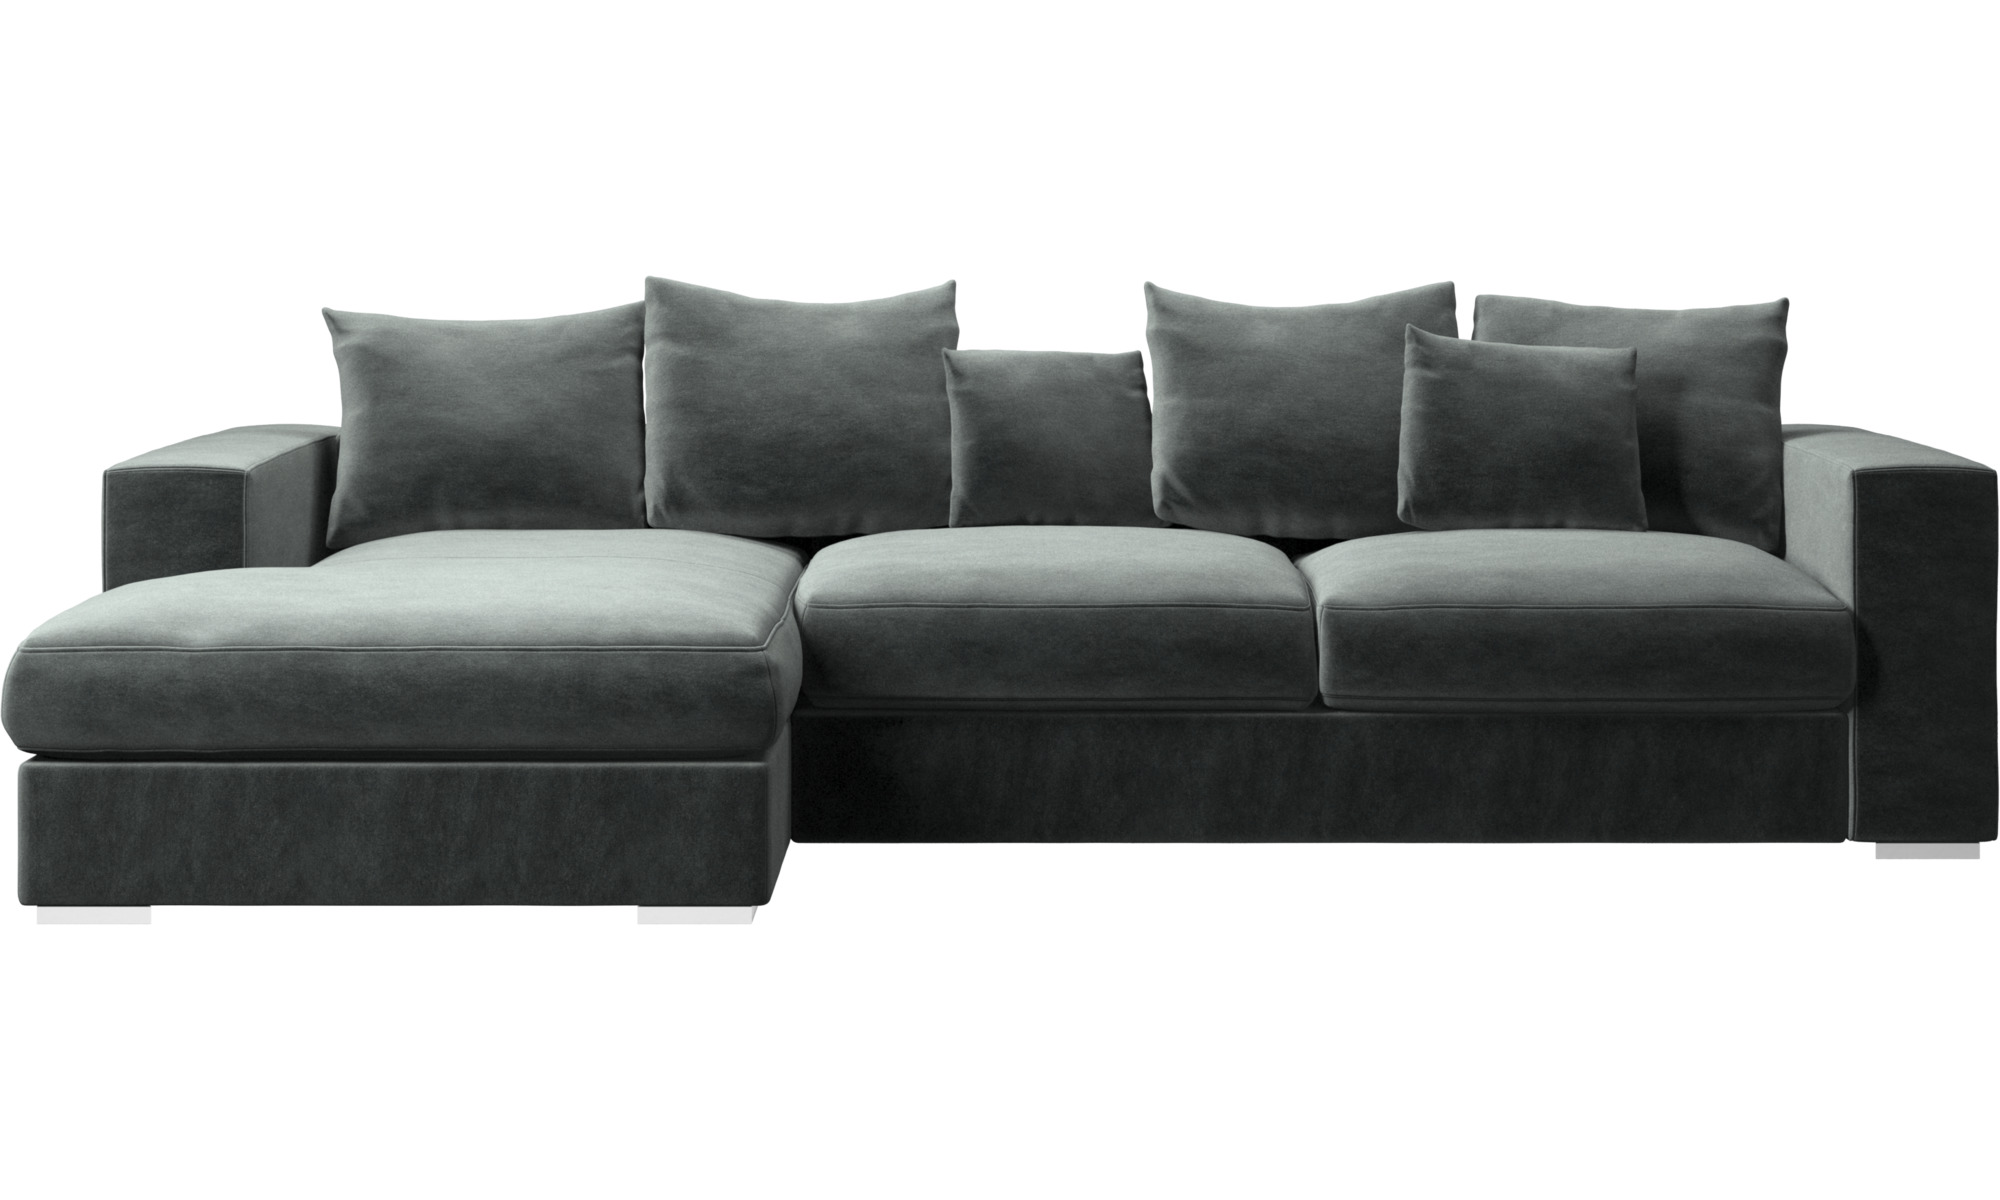 Chaise lounge sofa for Meubles concept chaise